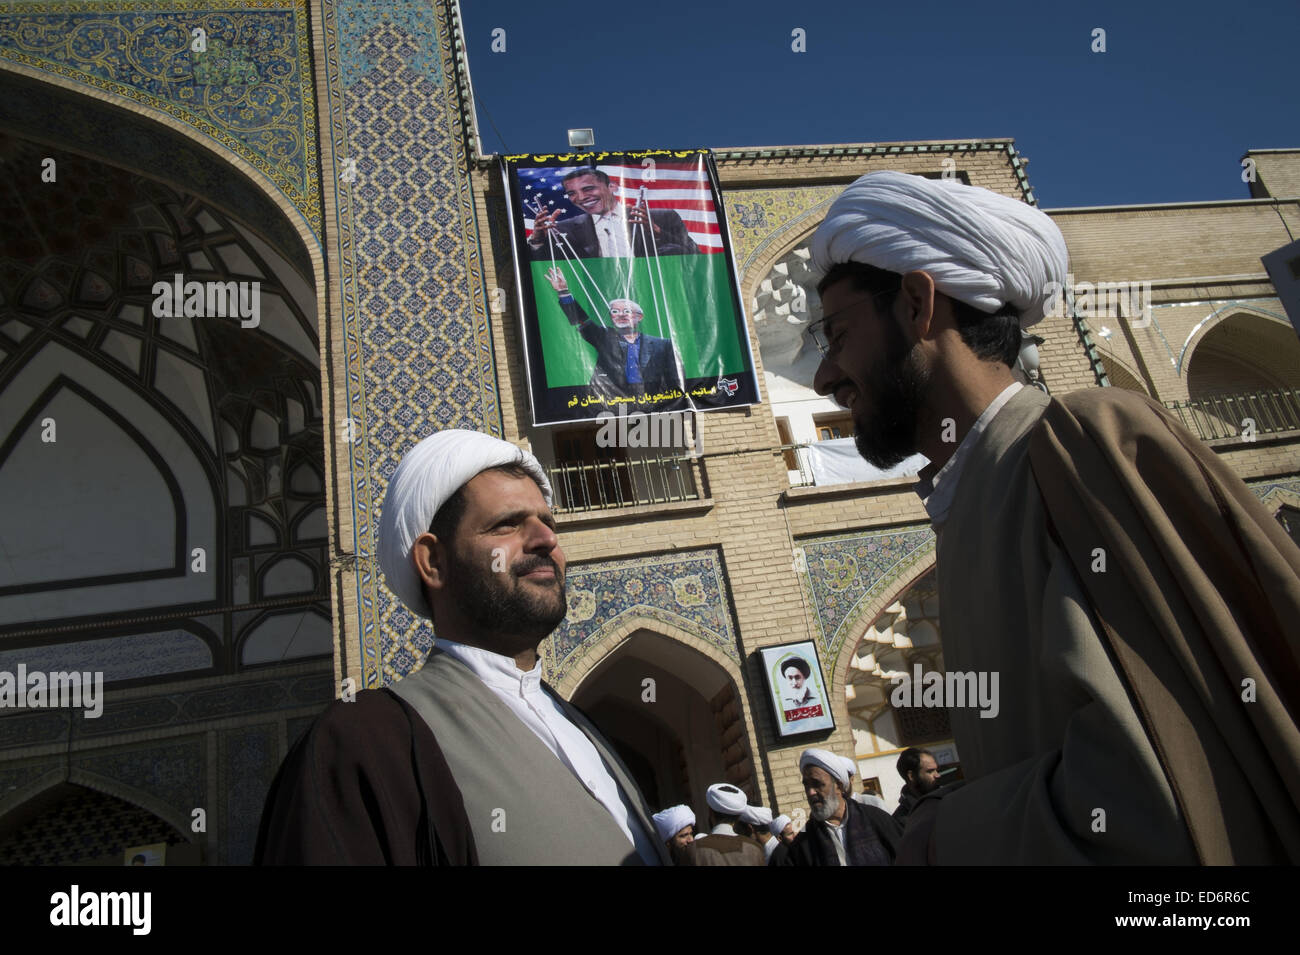 Qom, Iran. 29th Dec, 2014. December 30, 2014 - Qom, Iran - Two Iranian clerics talk with each other as a banner - Stock Image